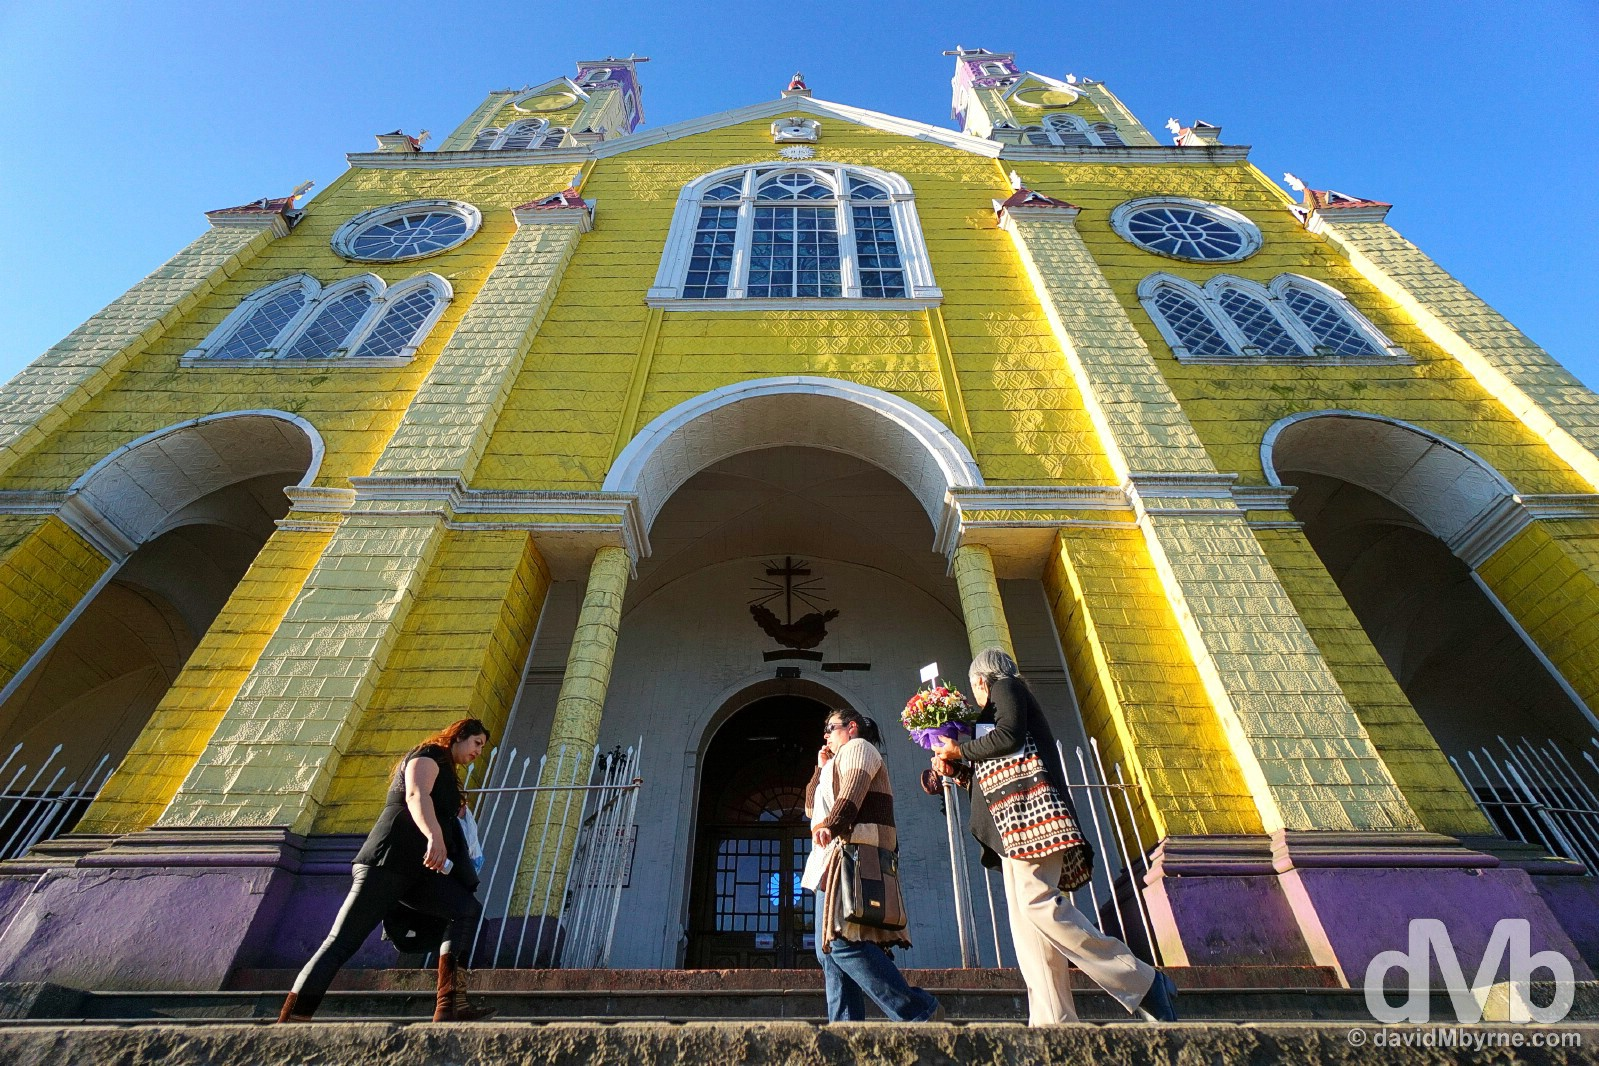 Fronting UNESCO-listed Iglesia de San Francisco in Castro, Chiloe, Chile. October 22, 2015.